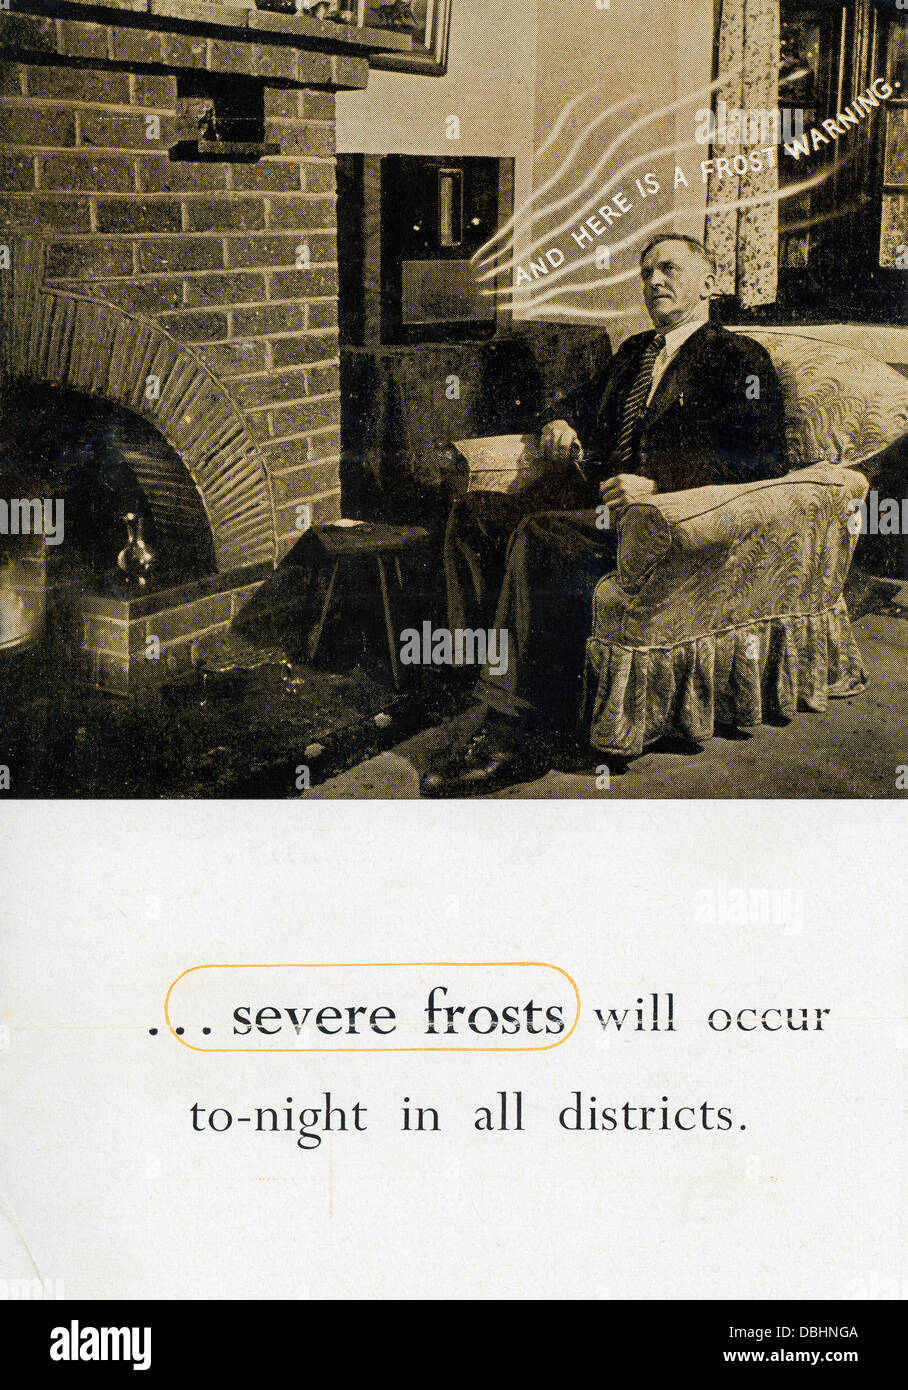 A radio warning of frost and frosts applicable to motor cars and vehicles 1950s from the Avon Insurance company Stock Photo